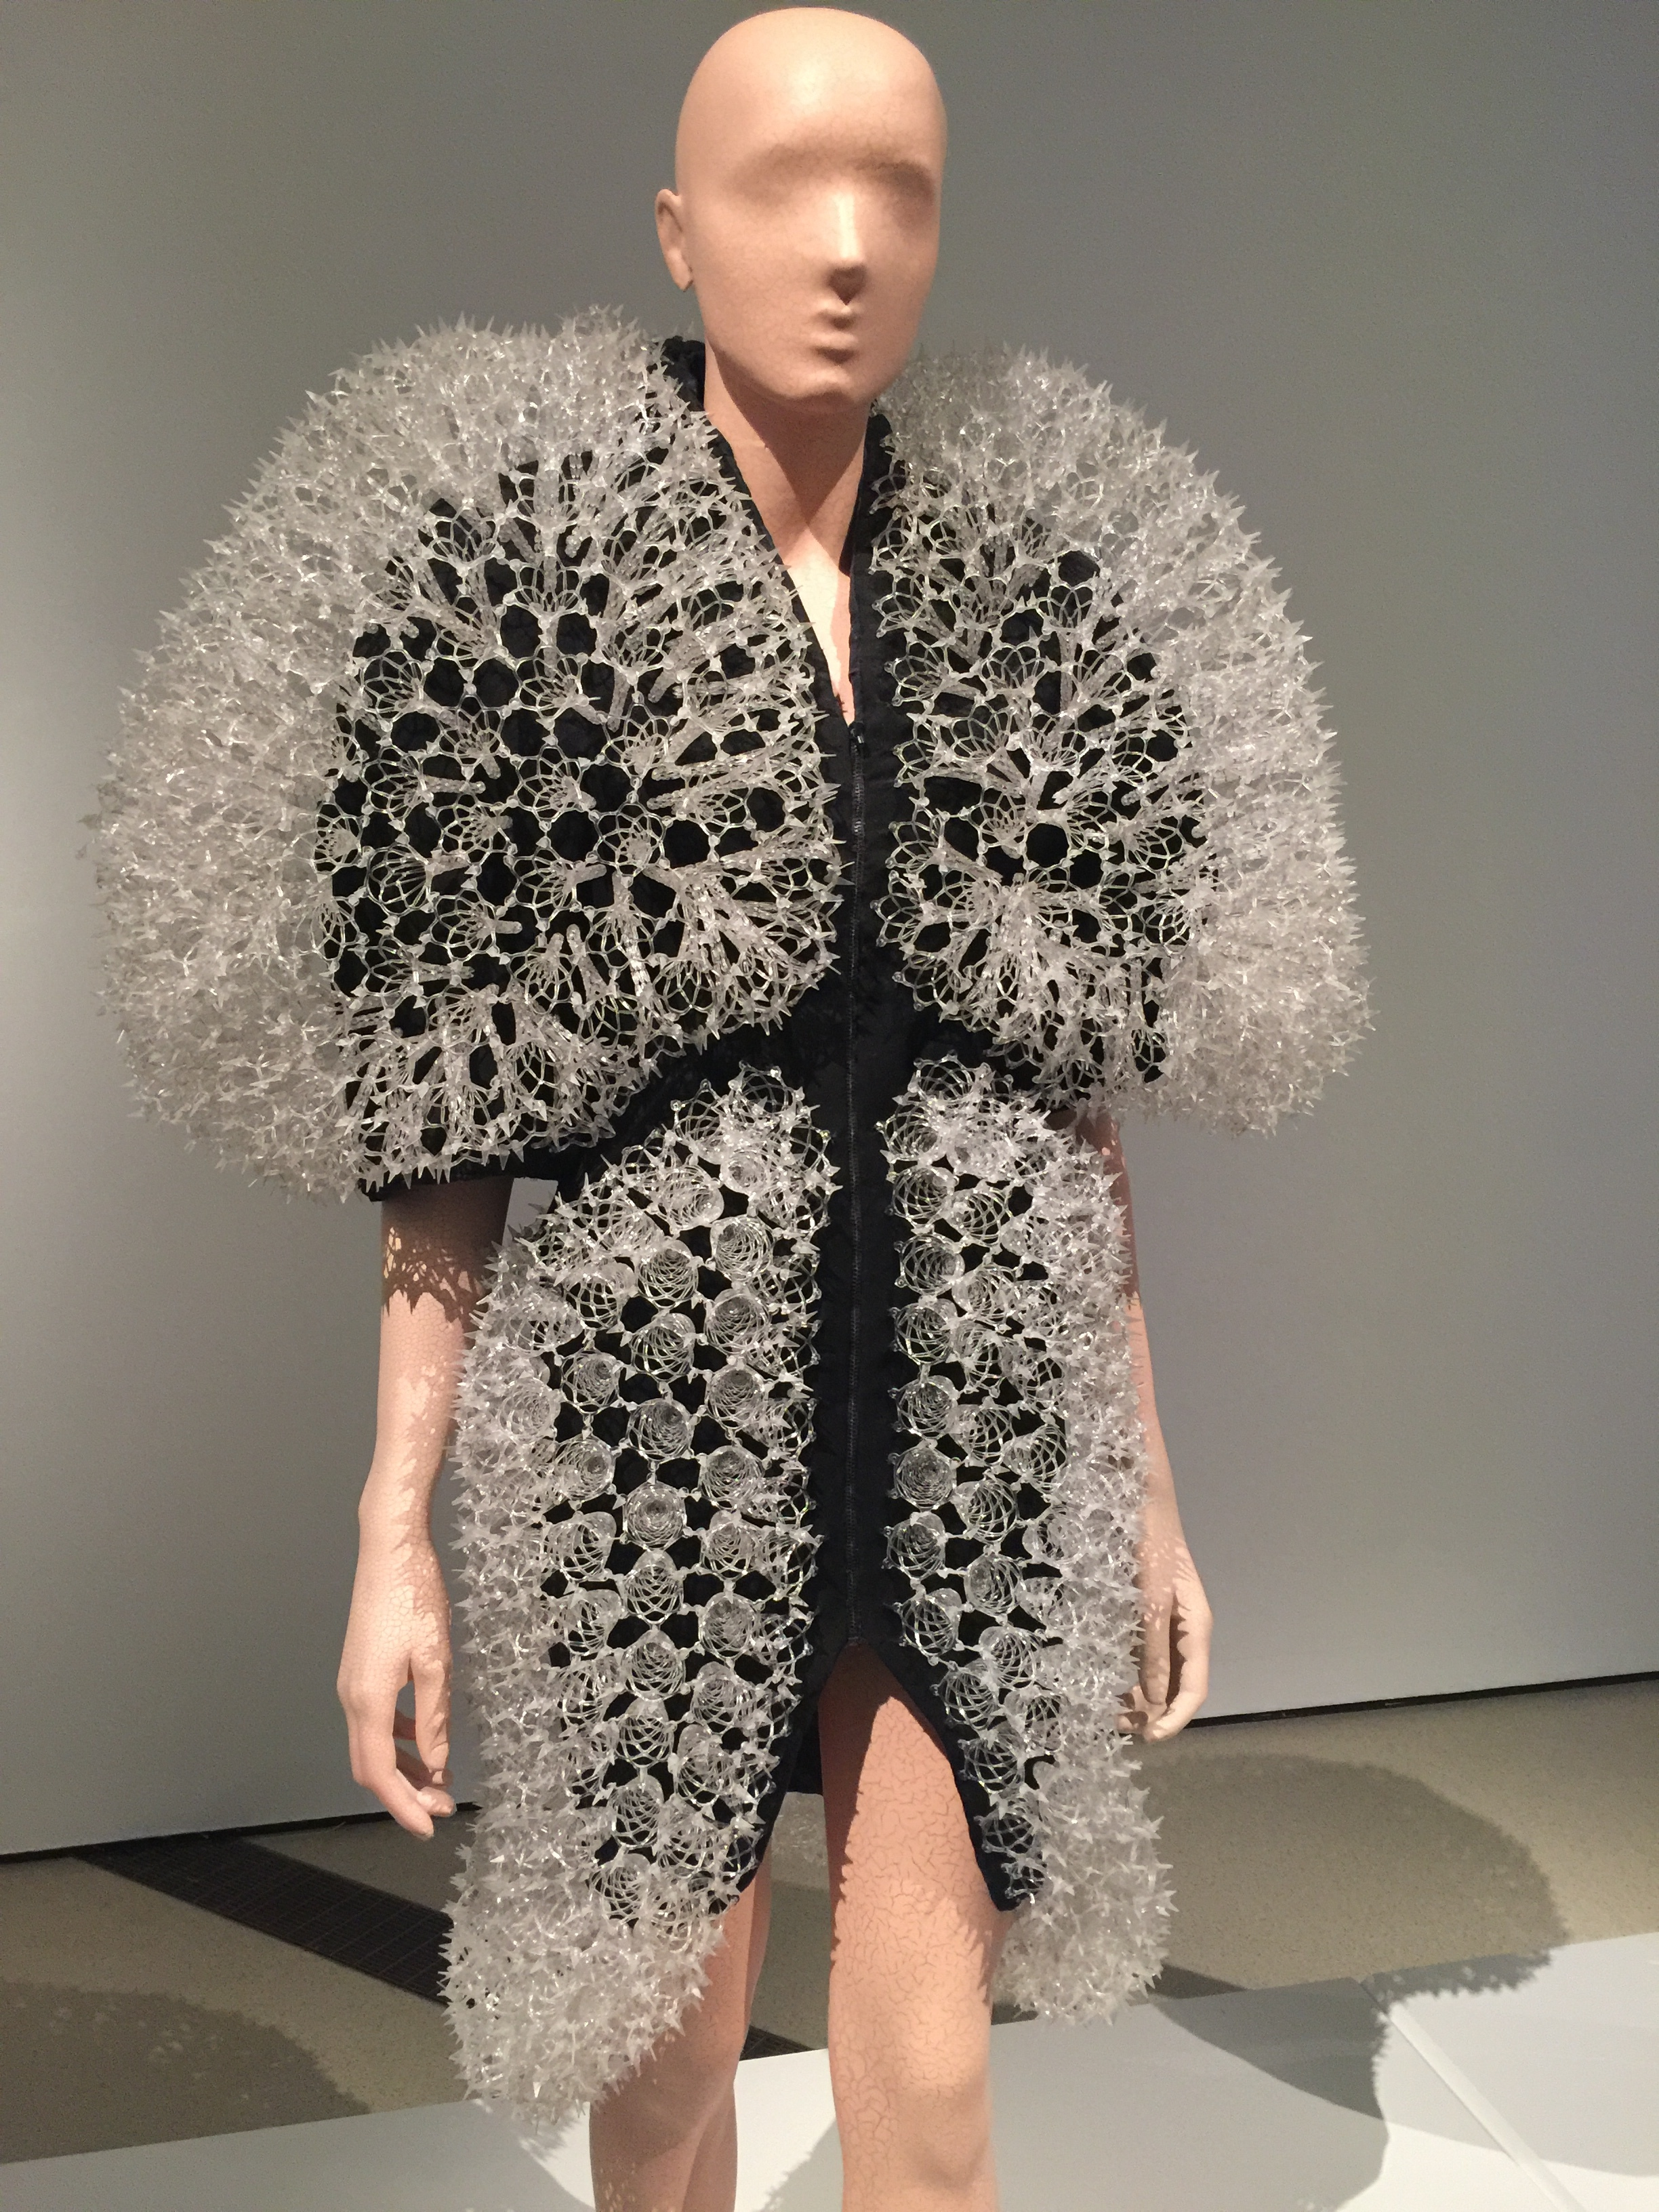 - The dresses take the breath away by their provocative audacity, sculptural architecture, technological prowess and femininity.